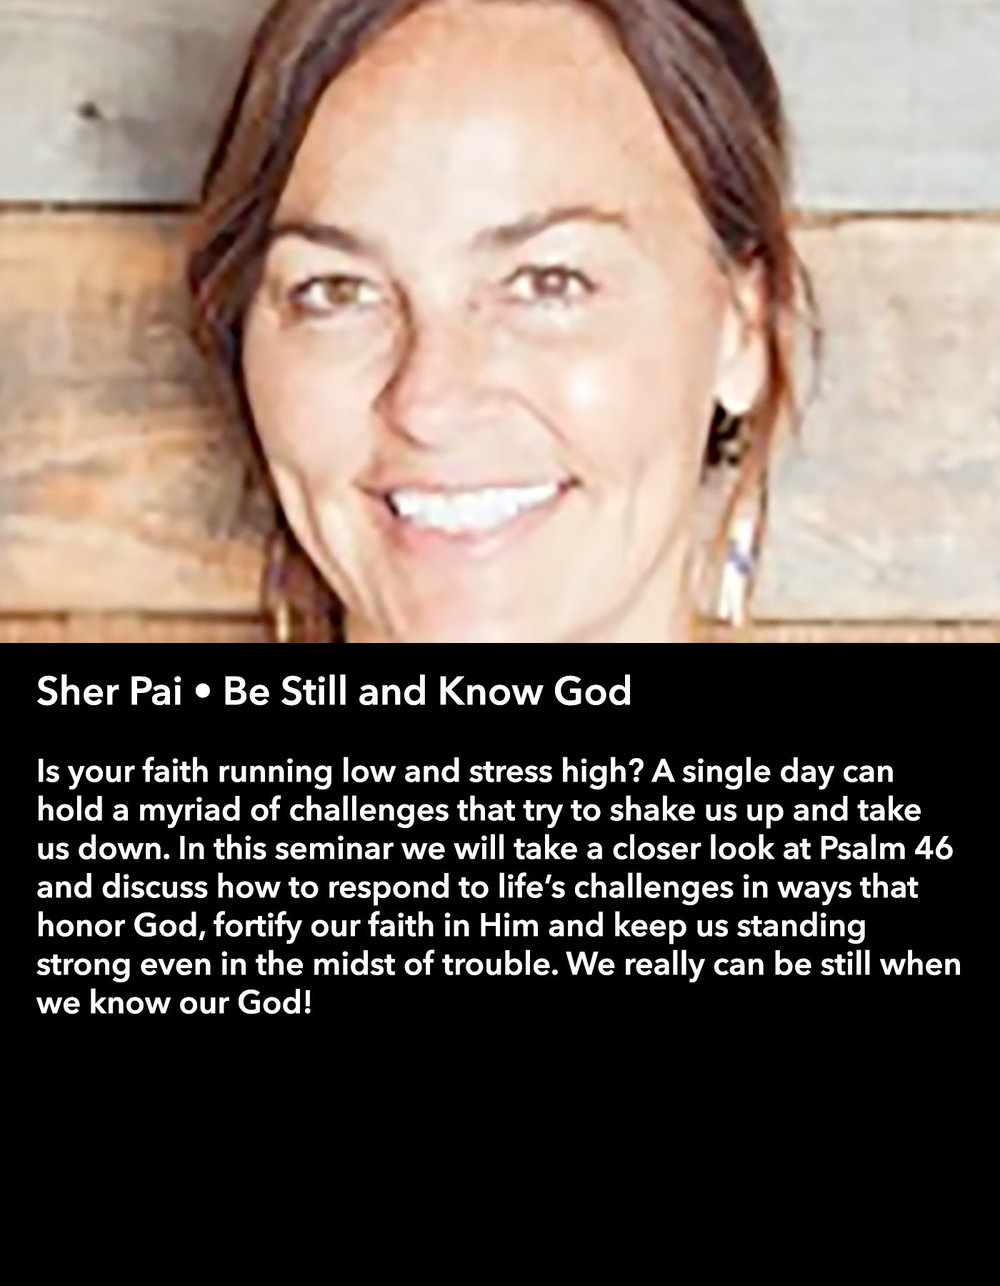 Sher Pai • Be Still and Know God • Friday Morning, March 17 • 10:30 – 11:45 am